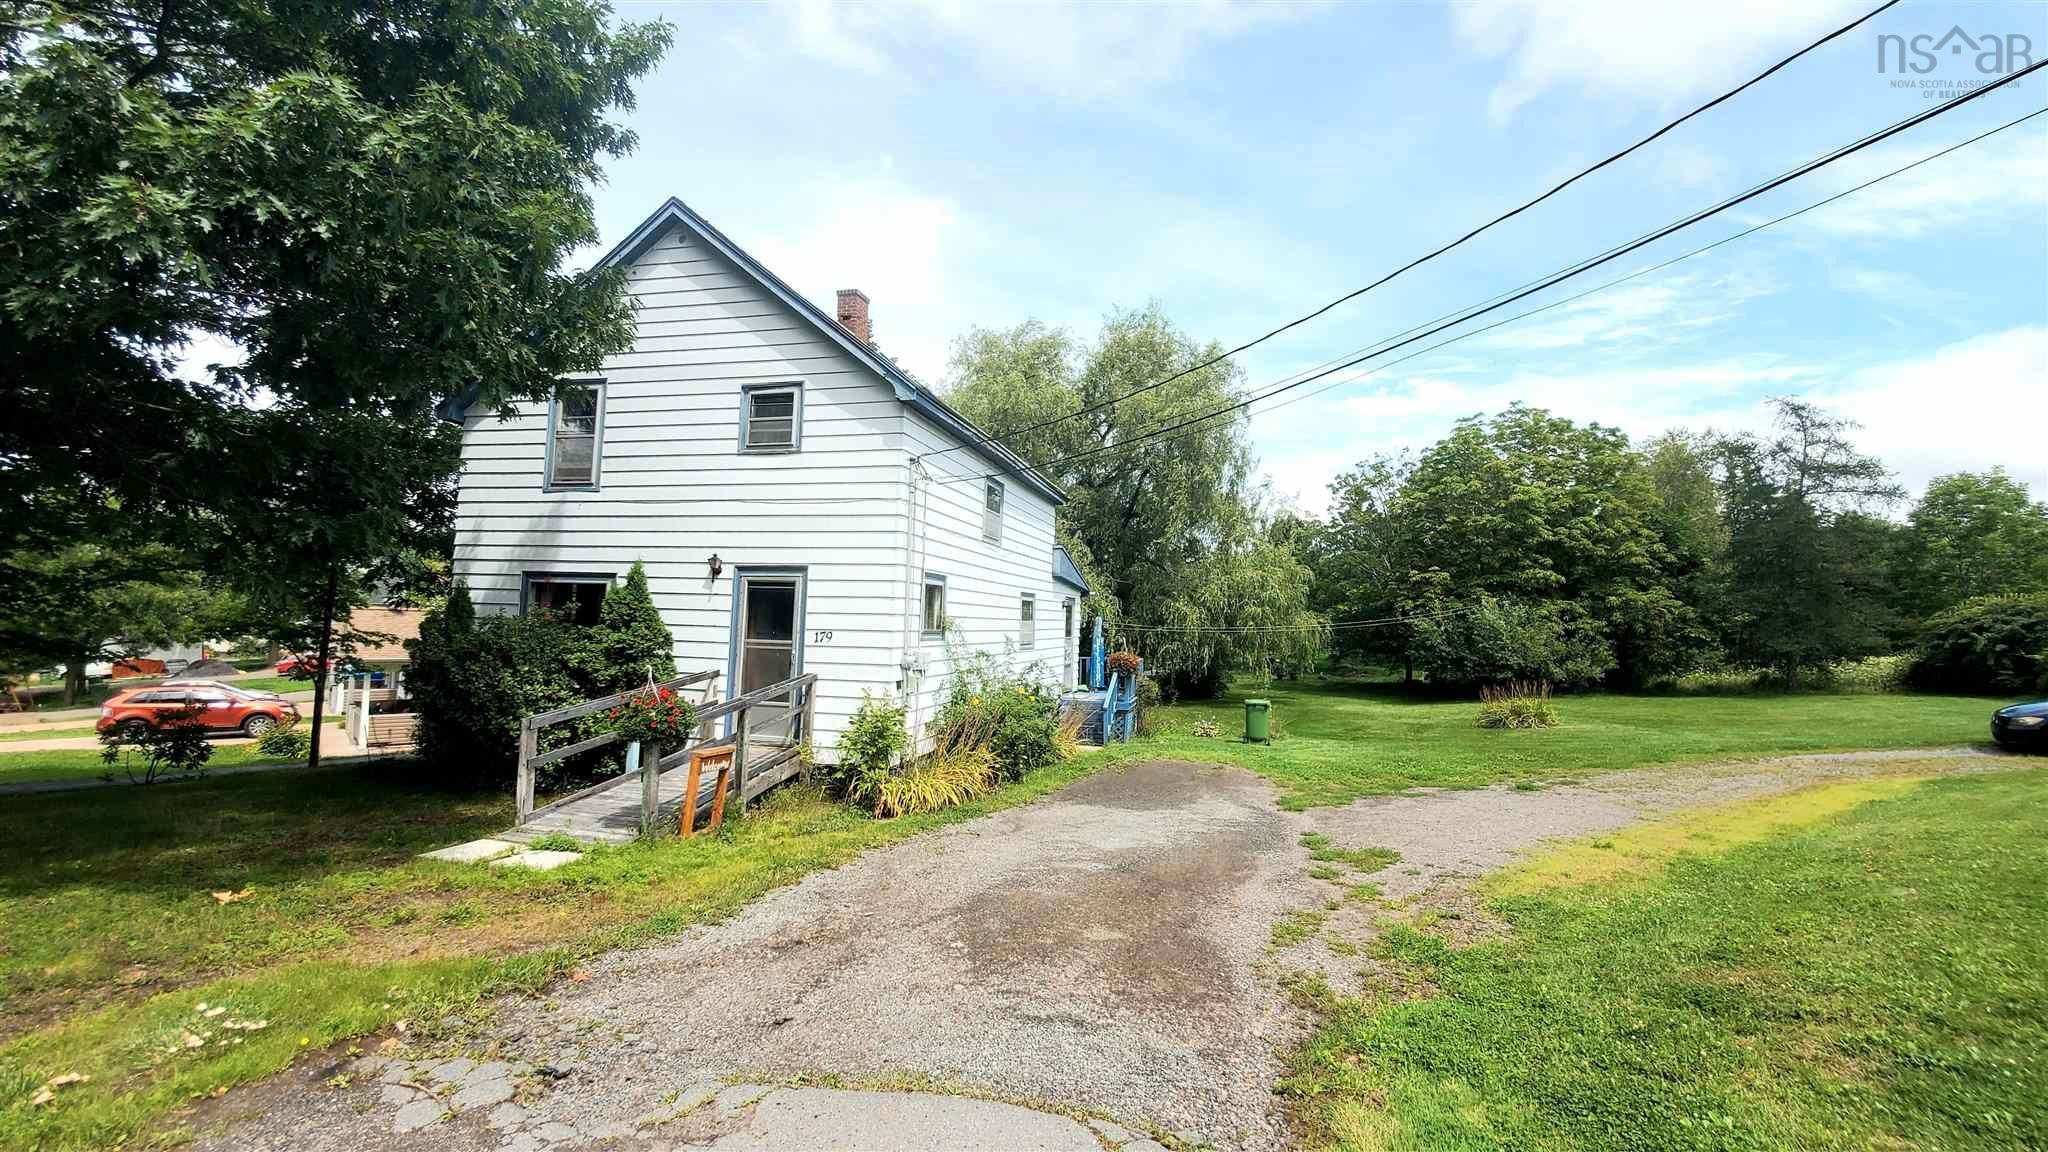 Photo 2: Photos: 179 Gaspereau Avenue in Wolfville: 404-Kings County Residential for sale (Annapolis Valley)  : MLS®# 202120571